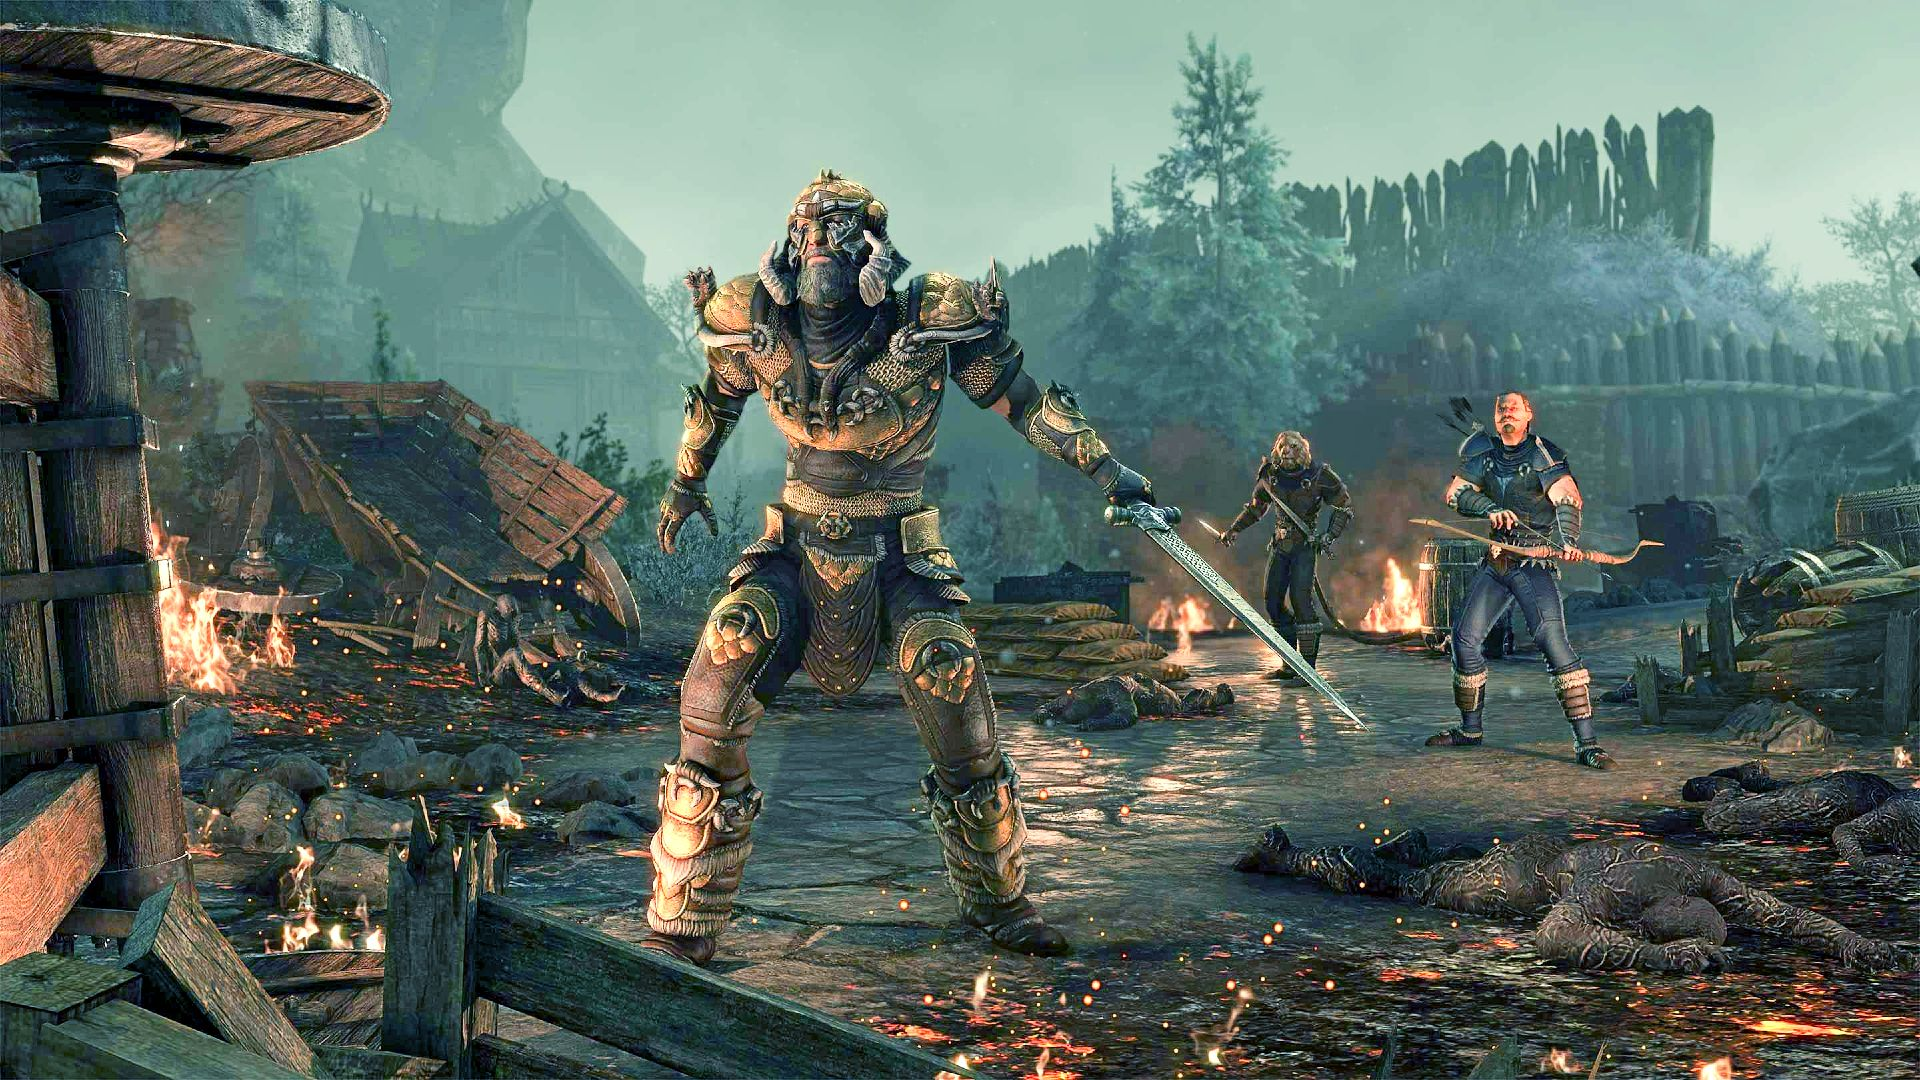 Games like Skyrim: five games to play while you wait for Elder Scrolls 6 |  PCGamesN